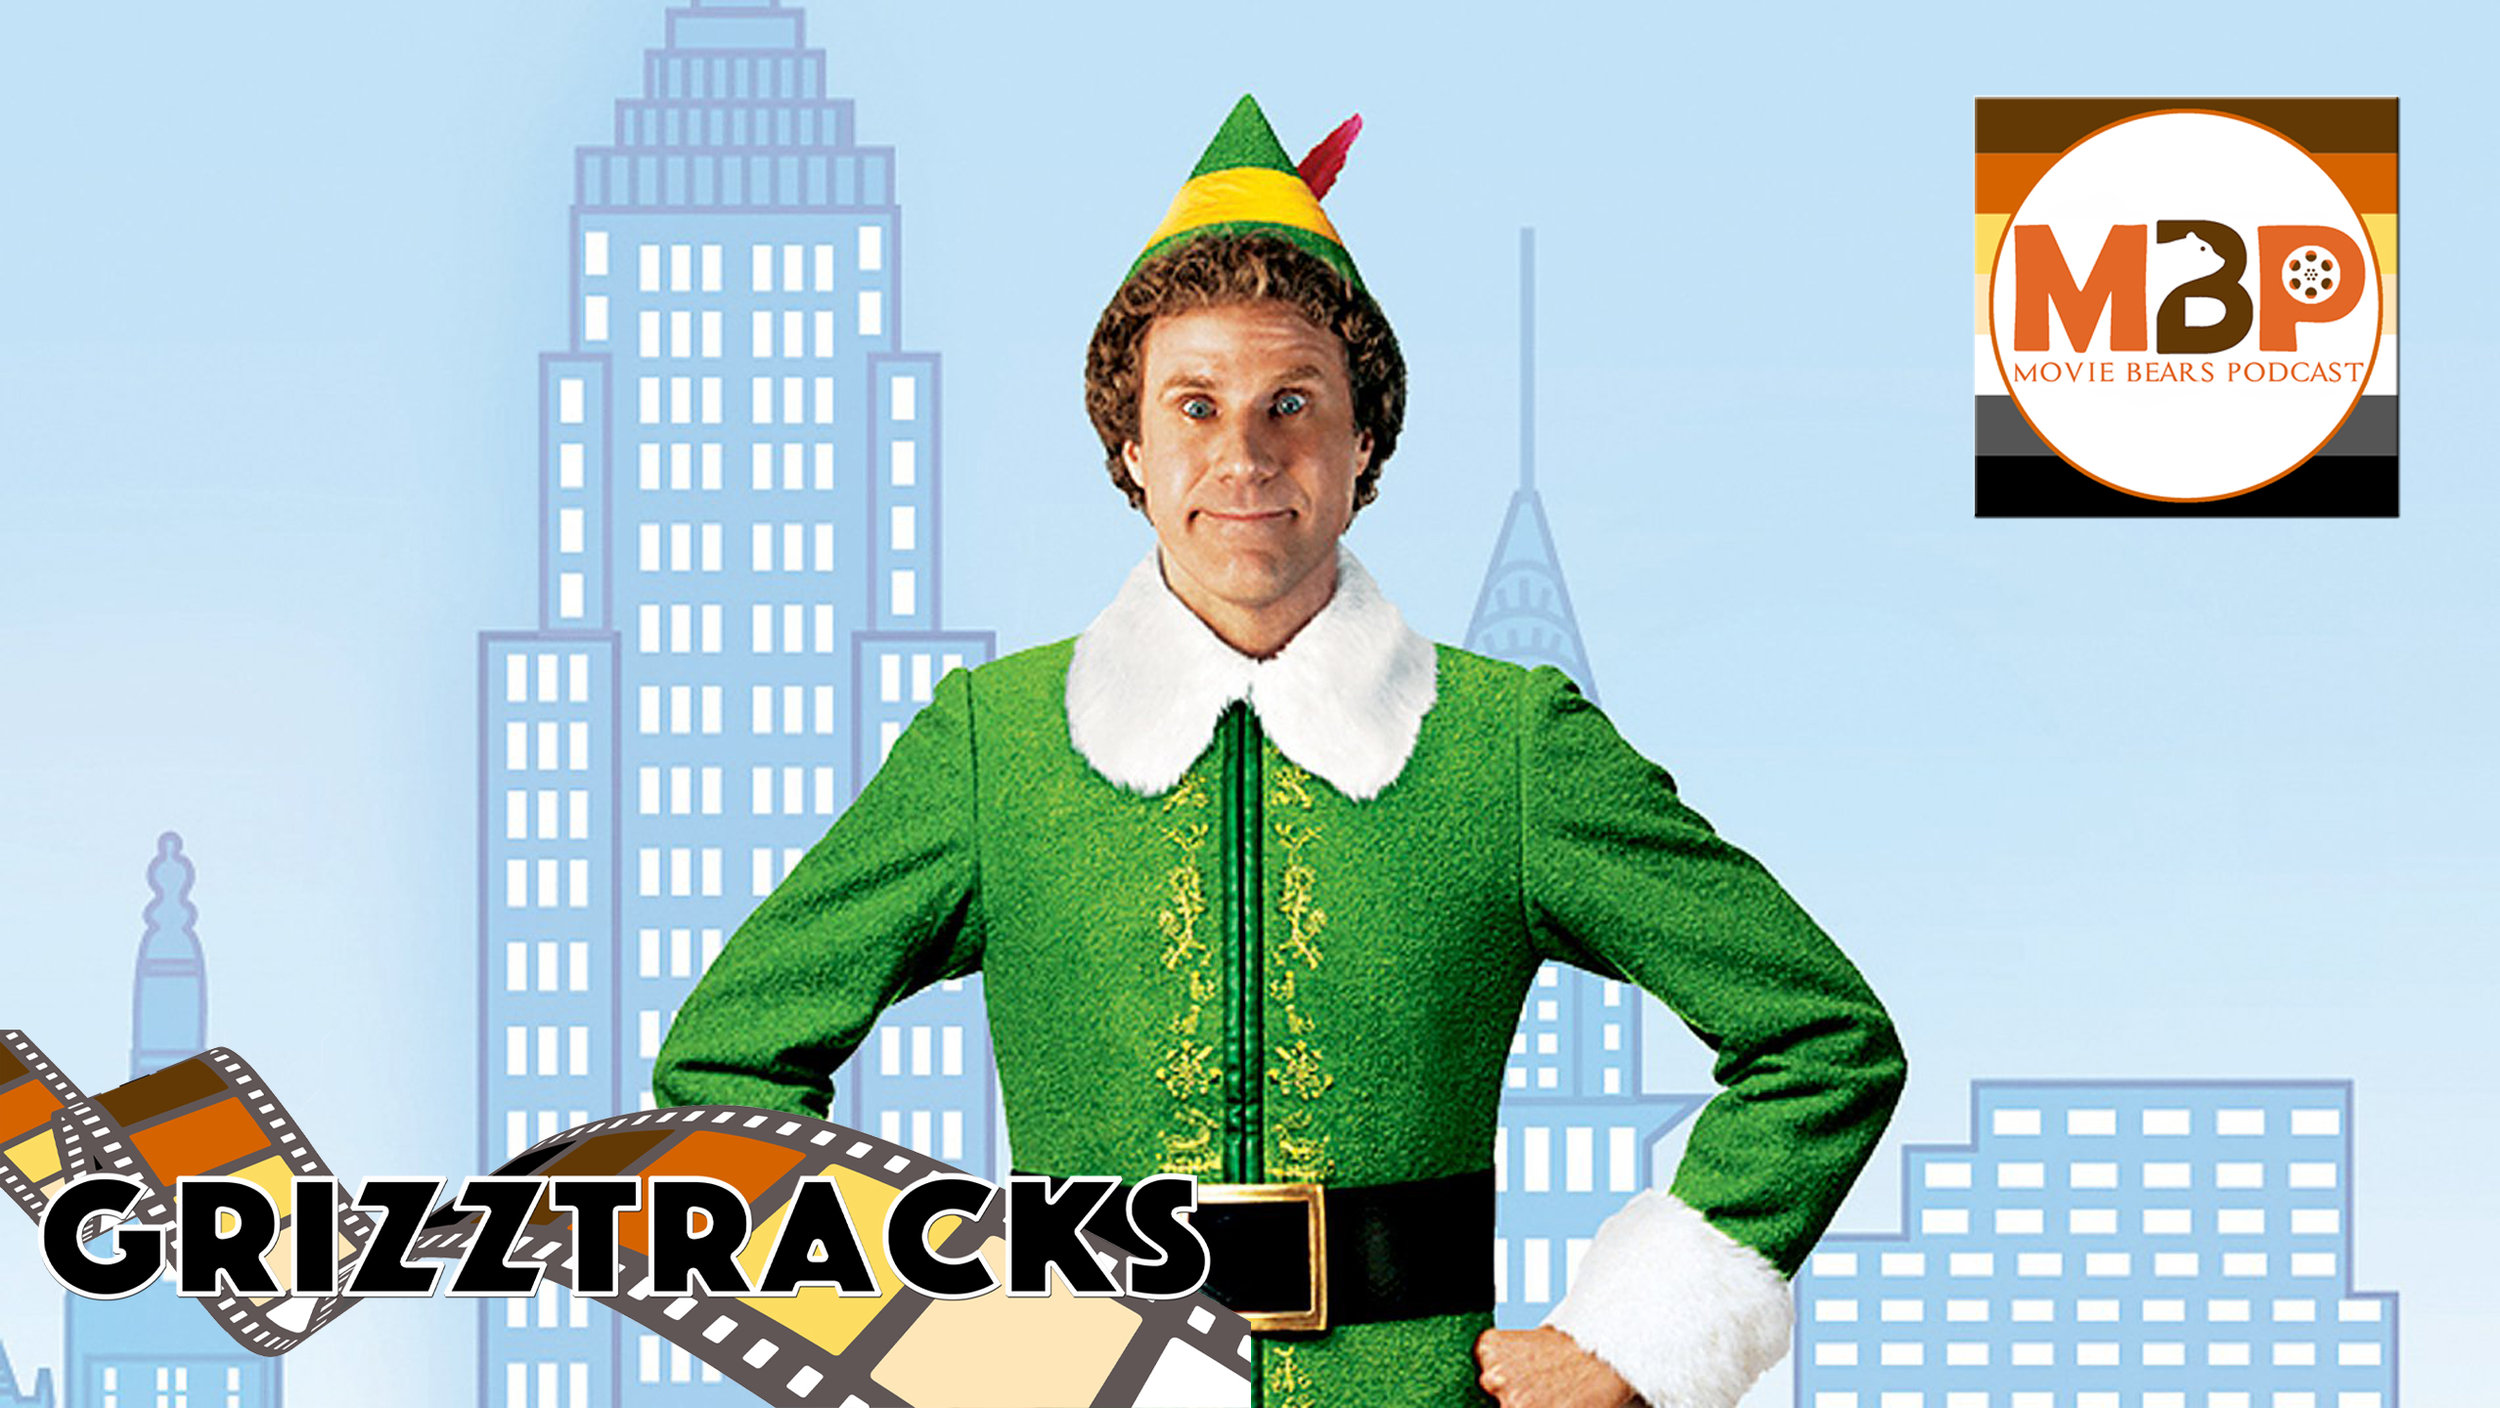 M   BP e304 - GrizzTracks Review of 'Elf' (12/11/18)    On this episode we celebrate our 6 year anniversary by doing something quite different. For the 1st time, we're trying out a new segment called GrizzTracks, where we provide a live commentary track to one of our favorite movies! For this one, we're gonna be talking about and riffing on Will Ferrell's holiday classic, 'ELF'. We provide instructions about when to sync up and follow along. So, for maximum fun, cue up the movie and follow along!!